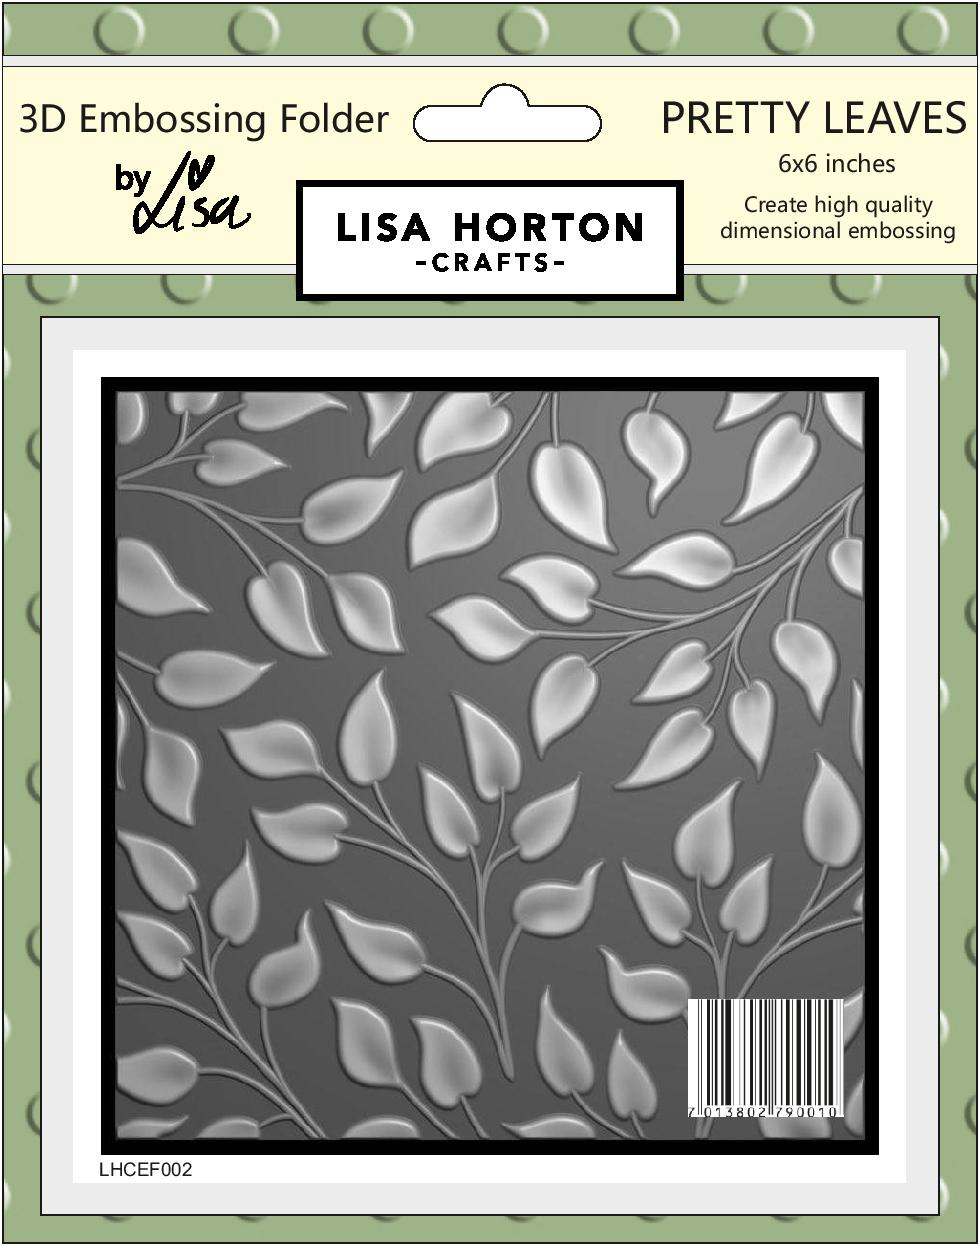 3D Embossing Folder - Pretty Leaves